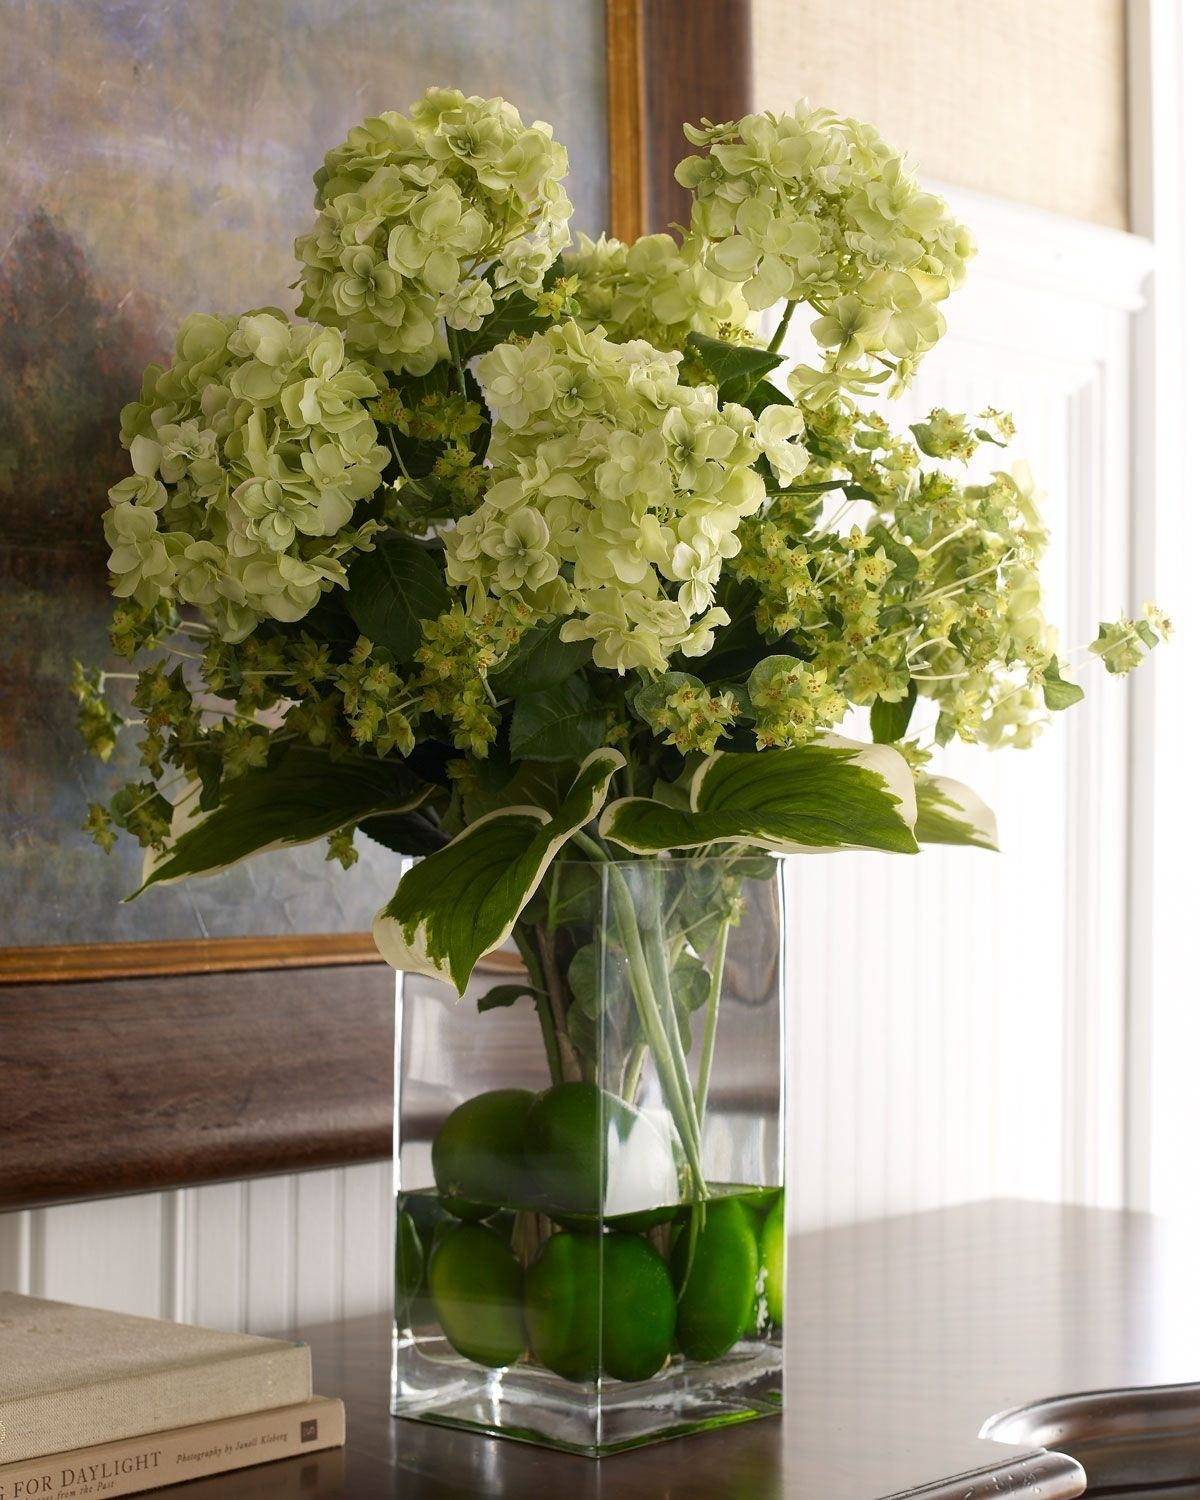 225 & Silk Flower Arrangements In Vases - Ideas on Foter